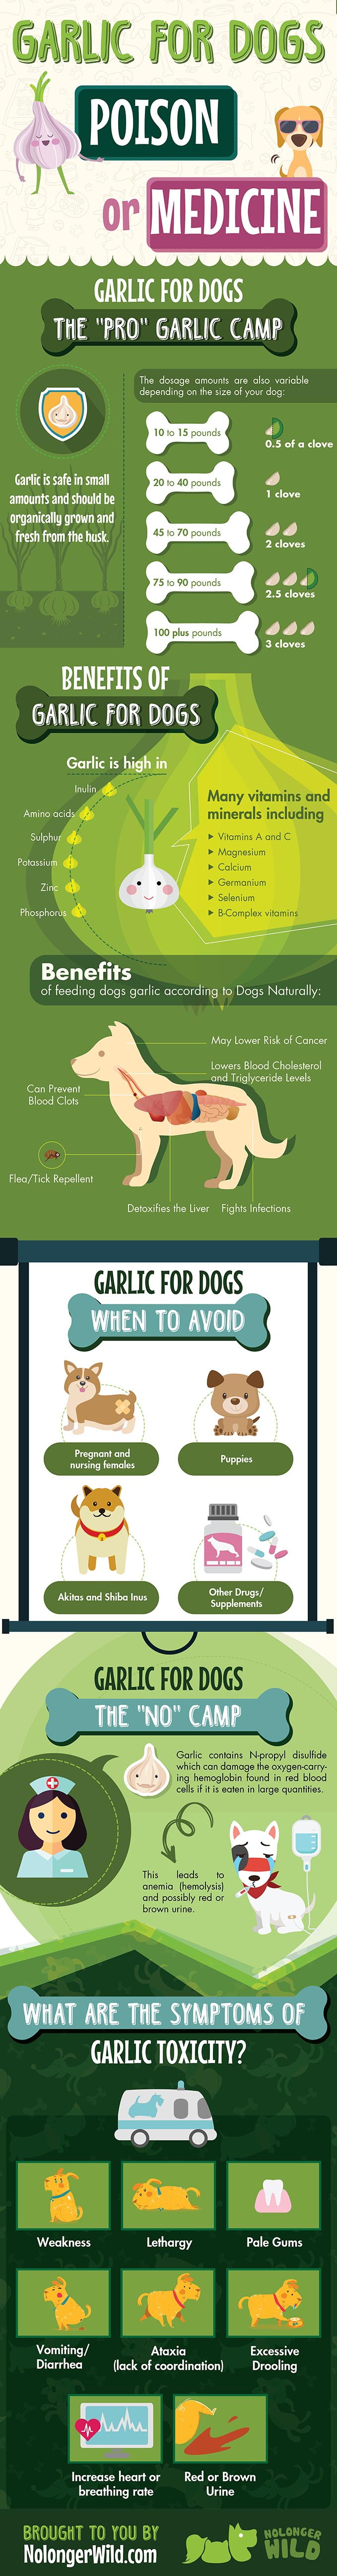 Garlic for Dogs: Poison or Medicine?